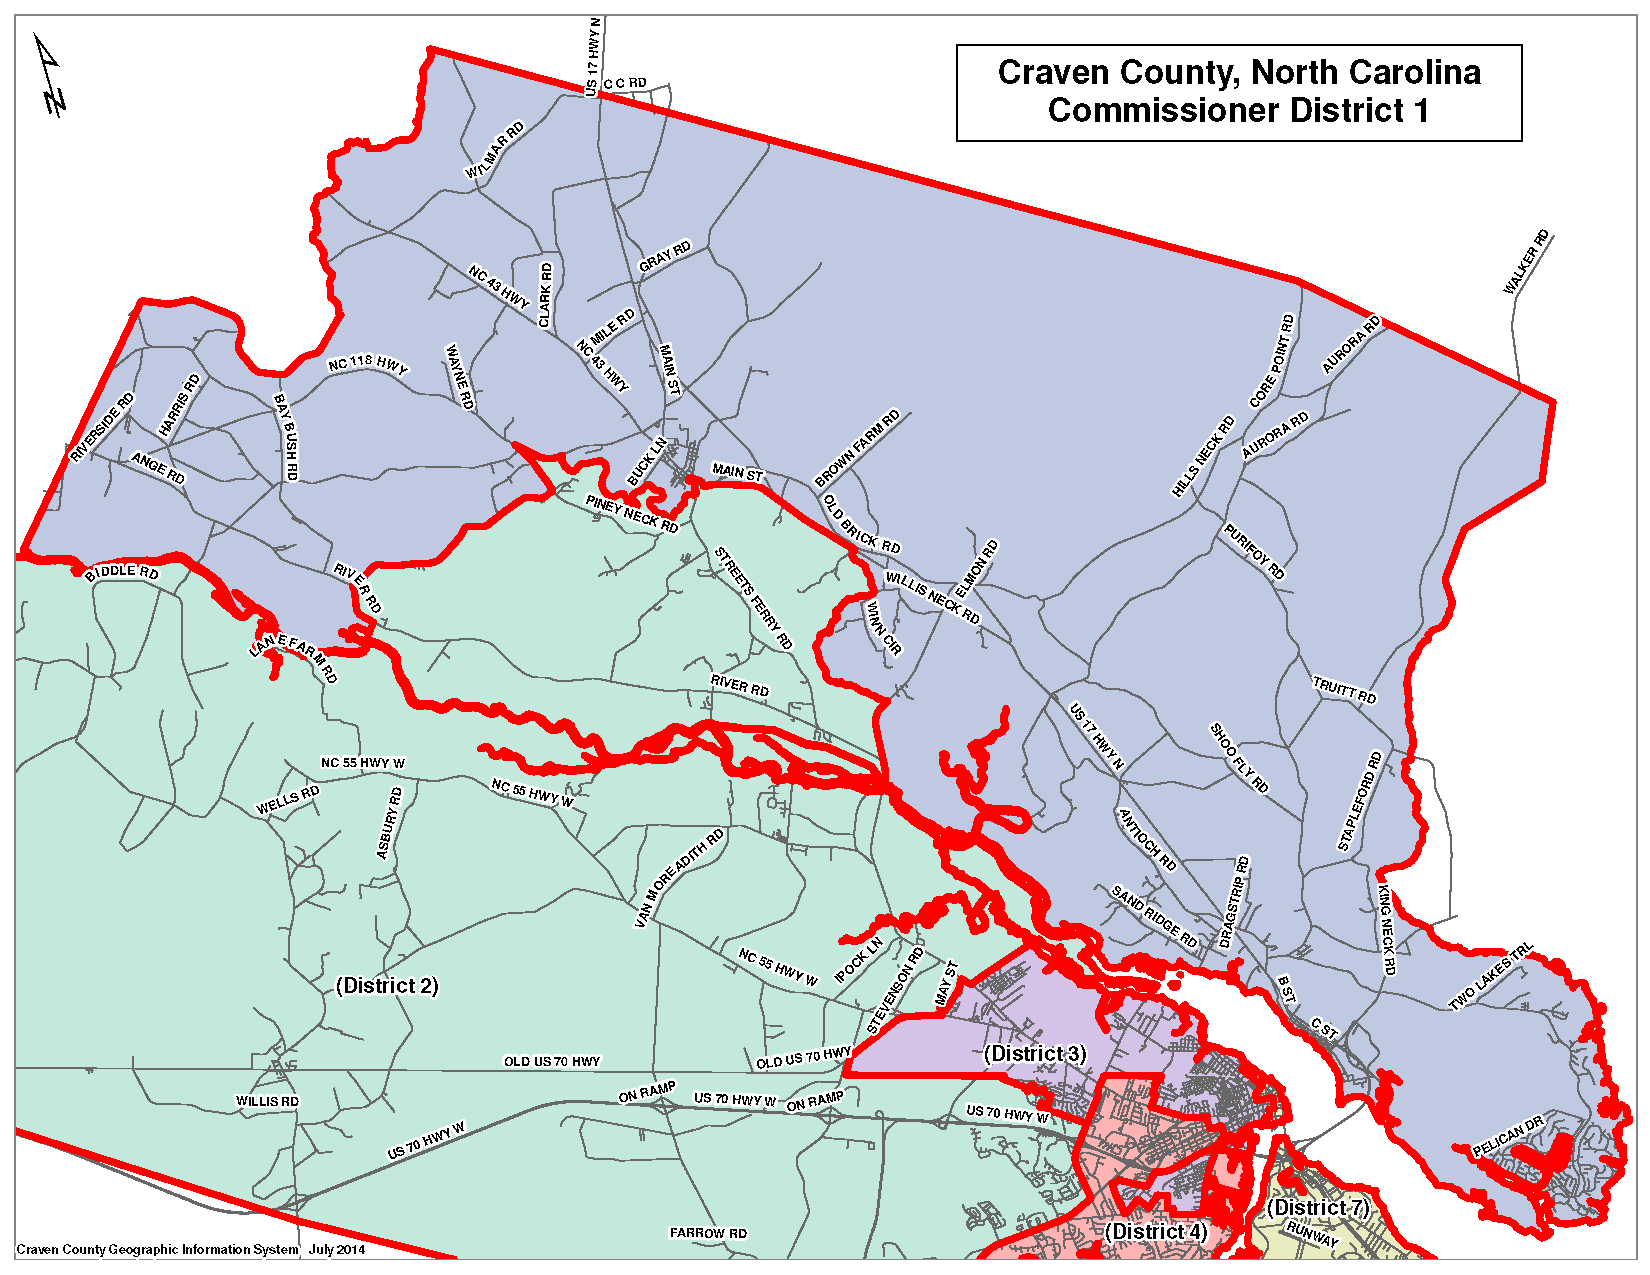 Commissioner District 1 Map